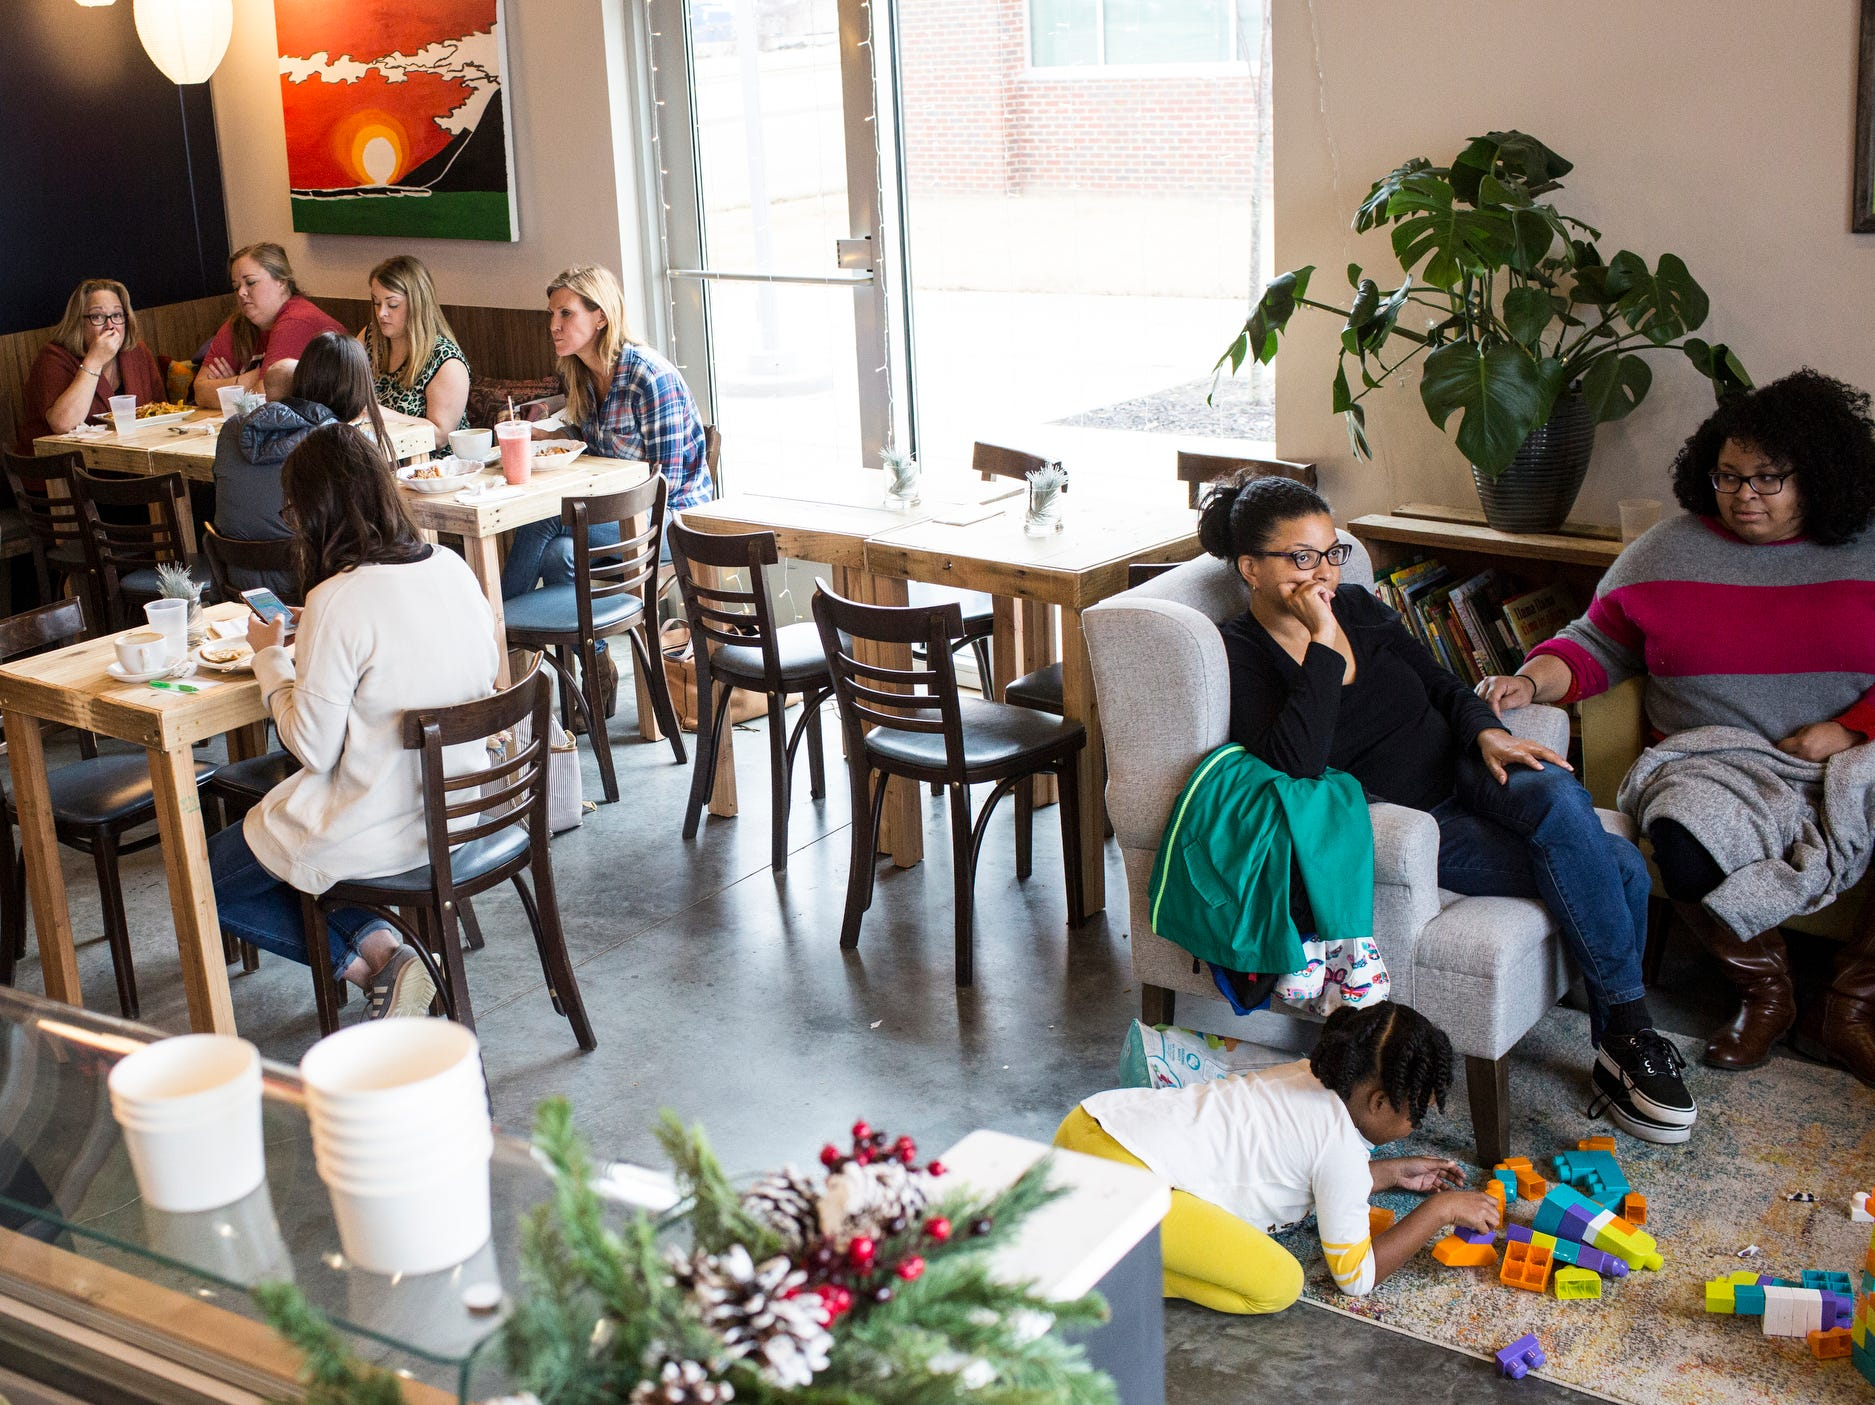 December 23 2018 - Scenes from Inspire Community Cafe during the final of three friends & family soft openings before the cafe opens January 4th.